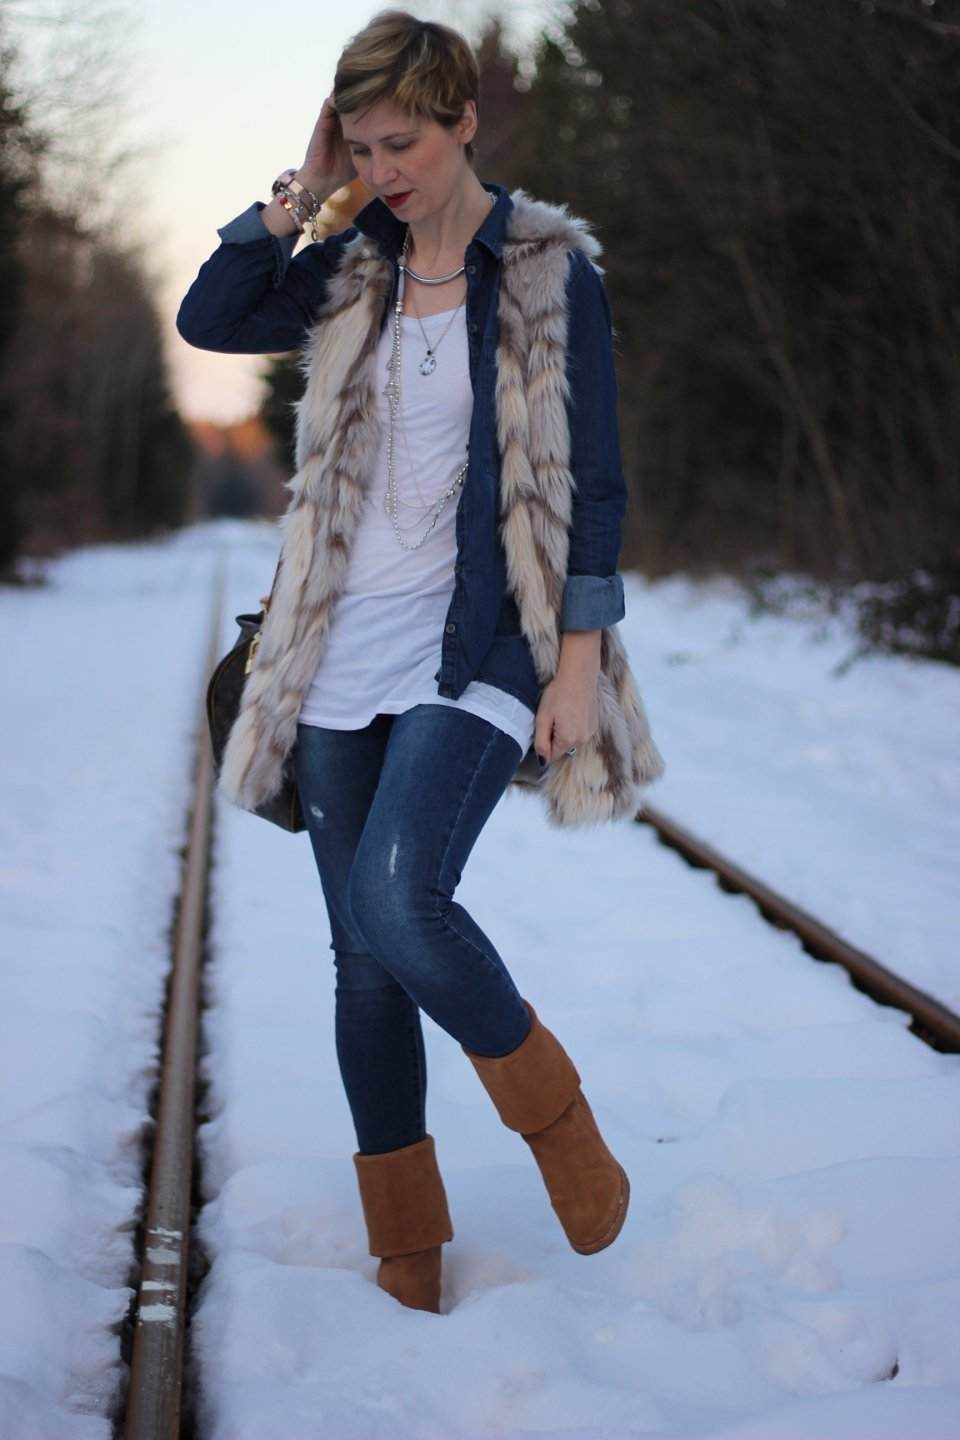 IMG_9949a_OnlyJeans_FakeFurCream_MarcoPolo_UGGs_Winter